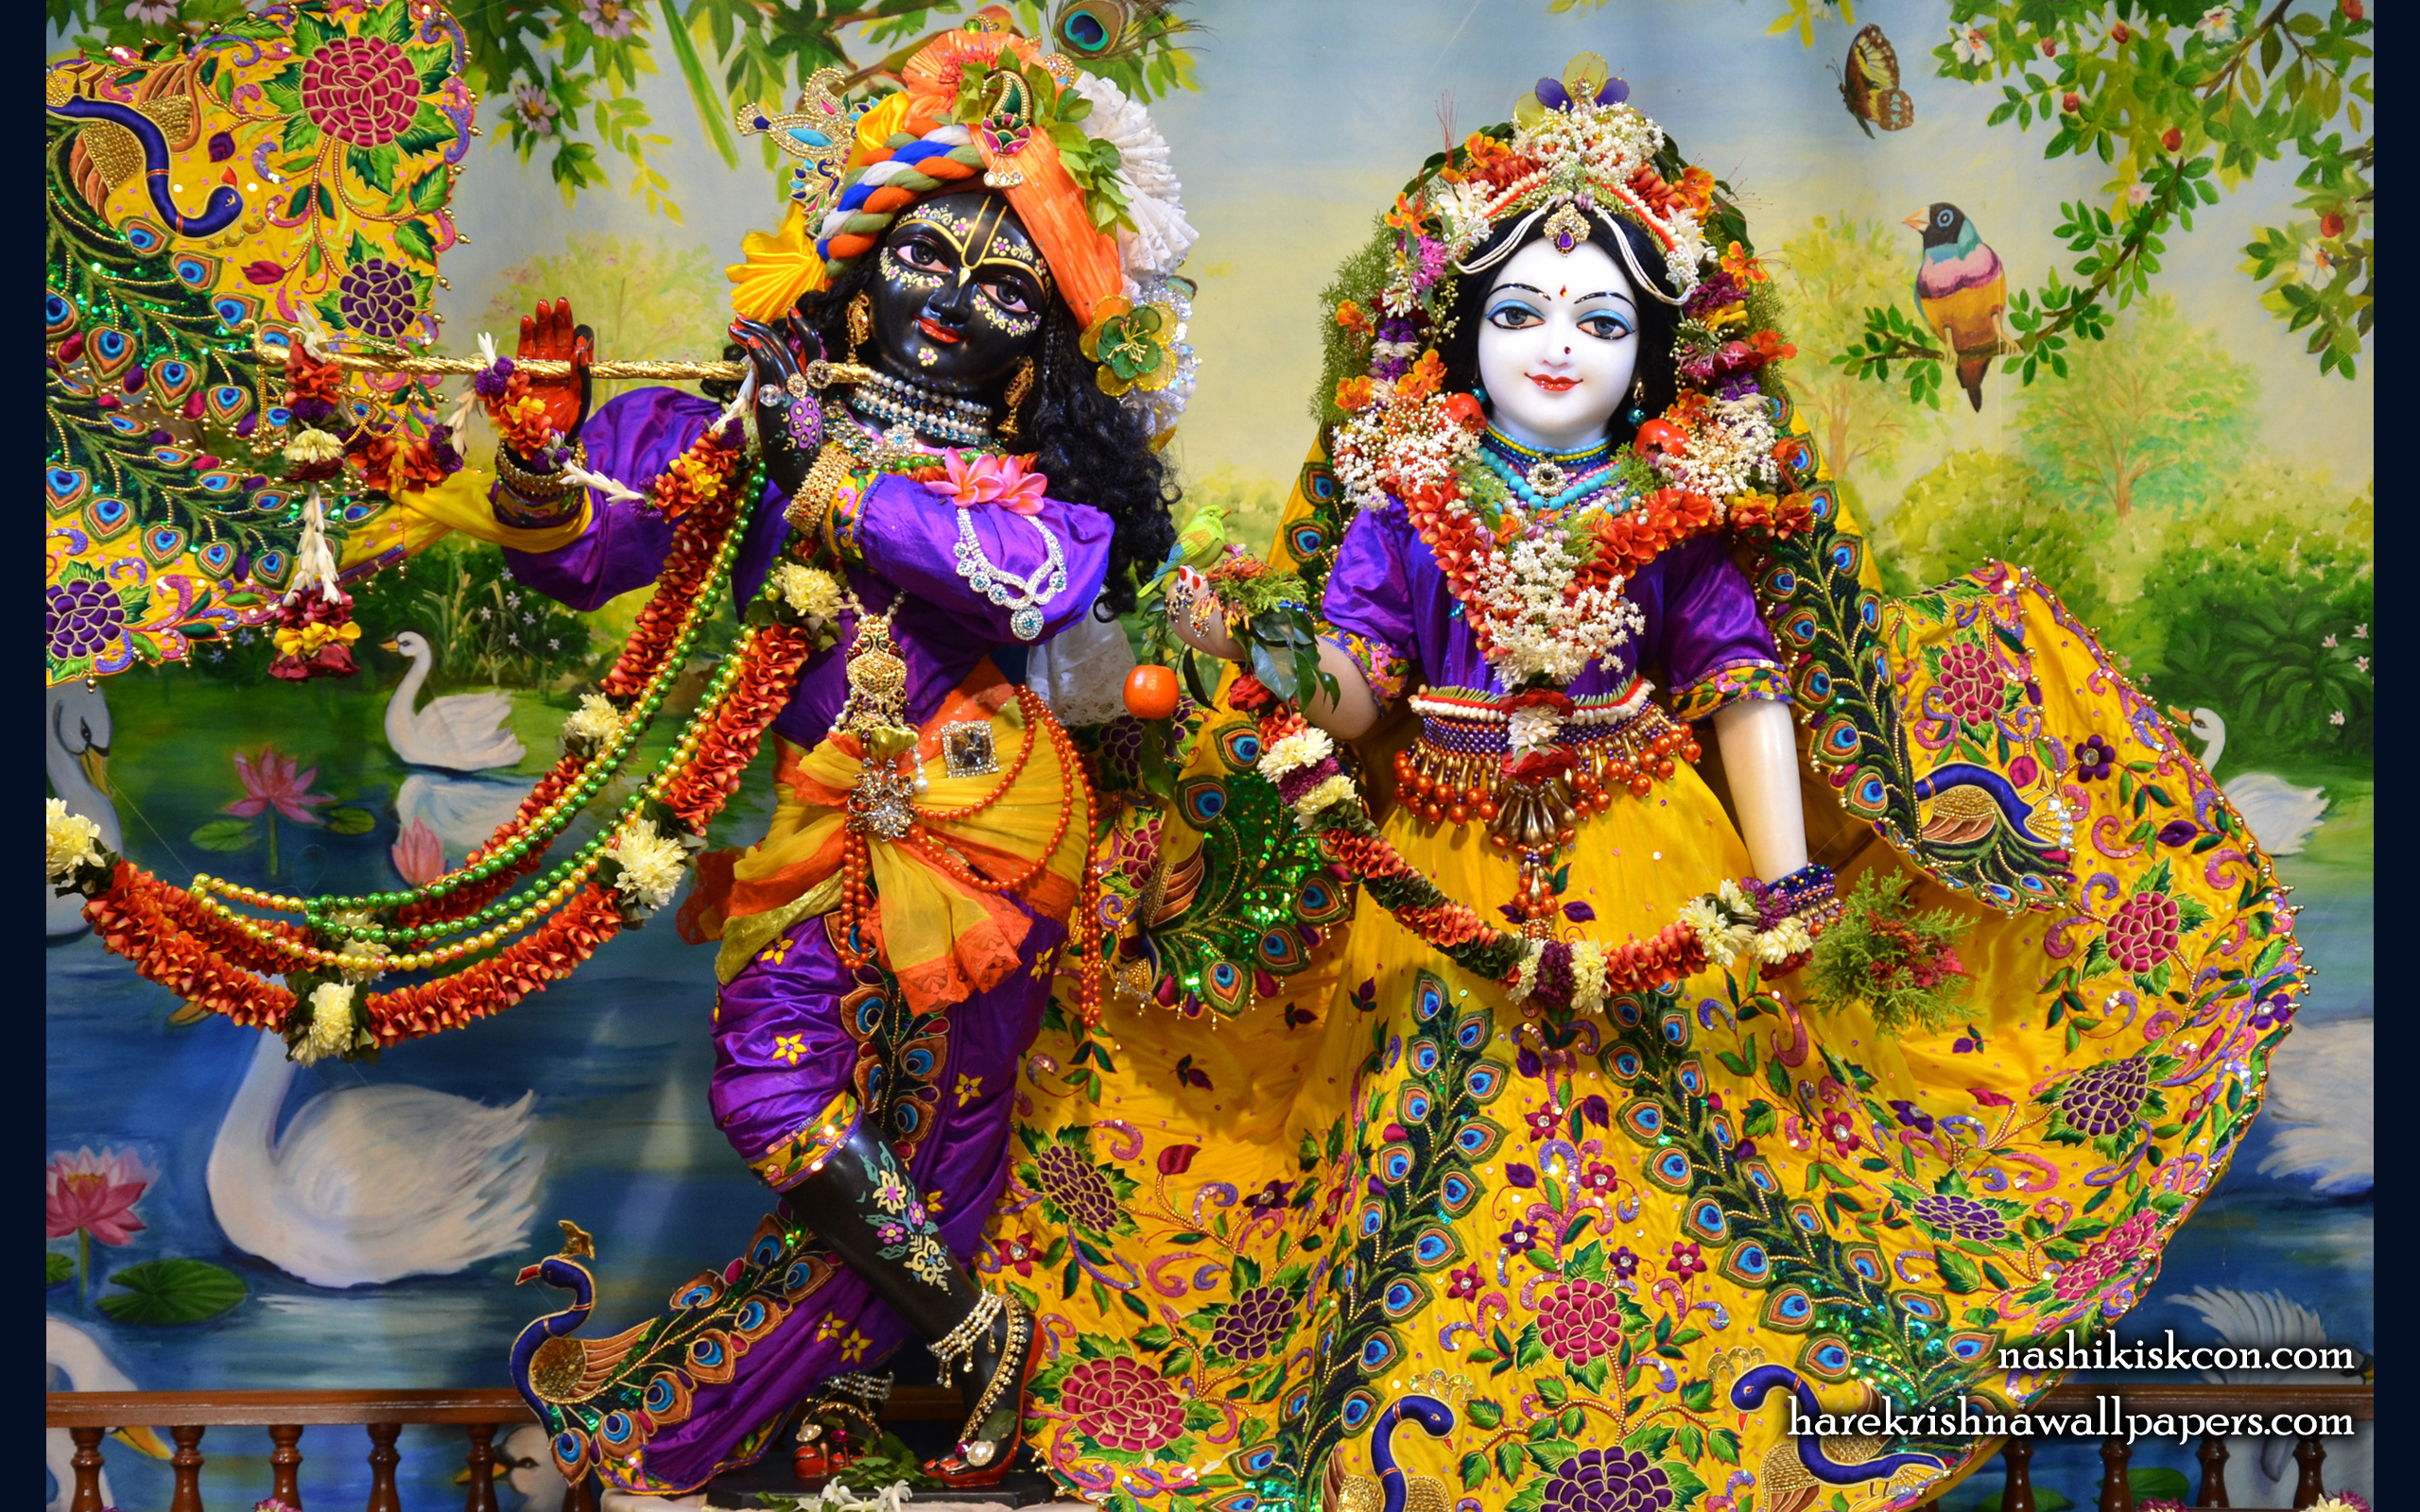 Sri Sri Radha Madan Gopal Wallpaper (013) Size 2560x1600 Download